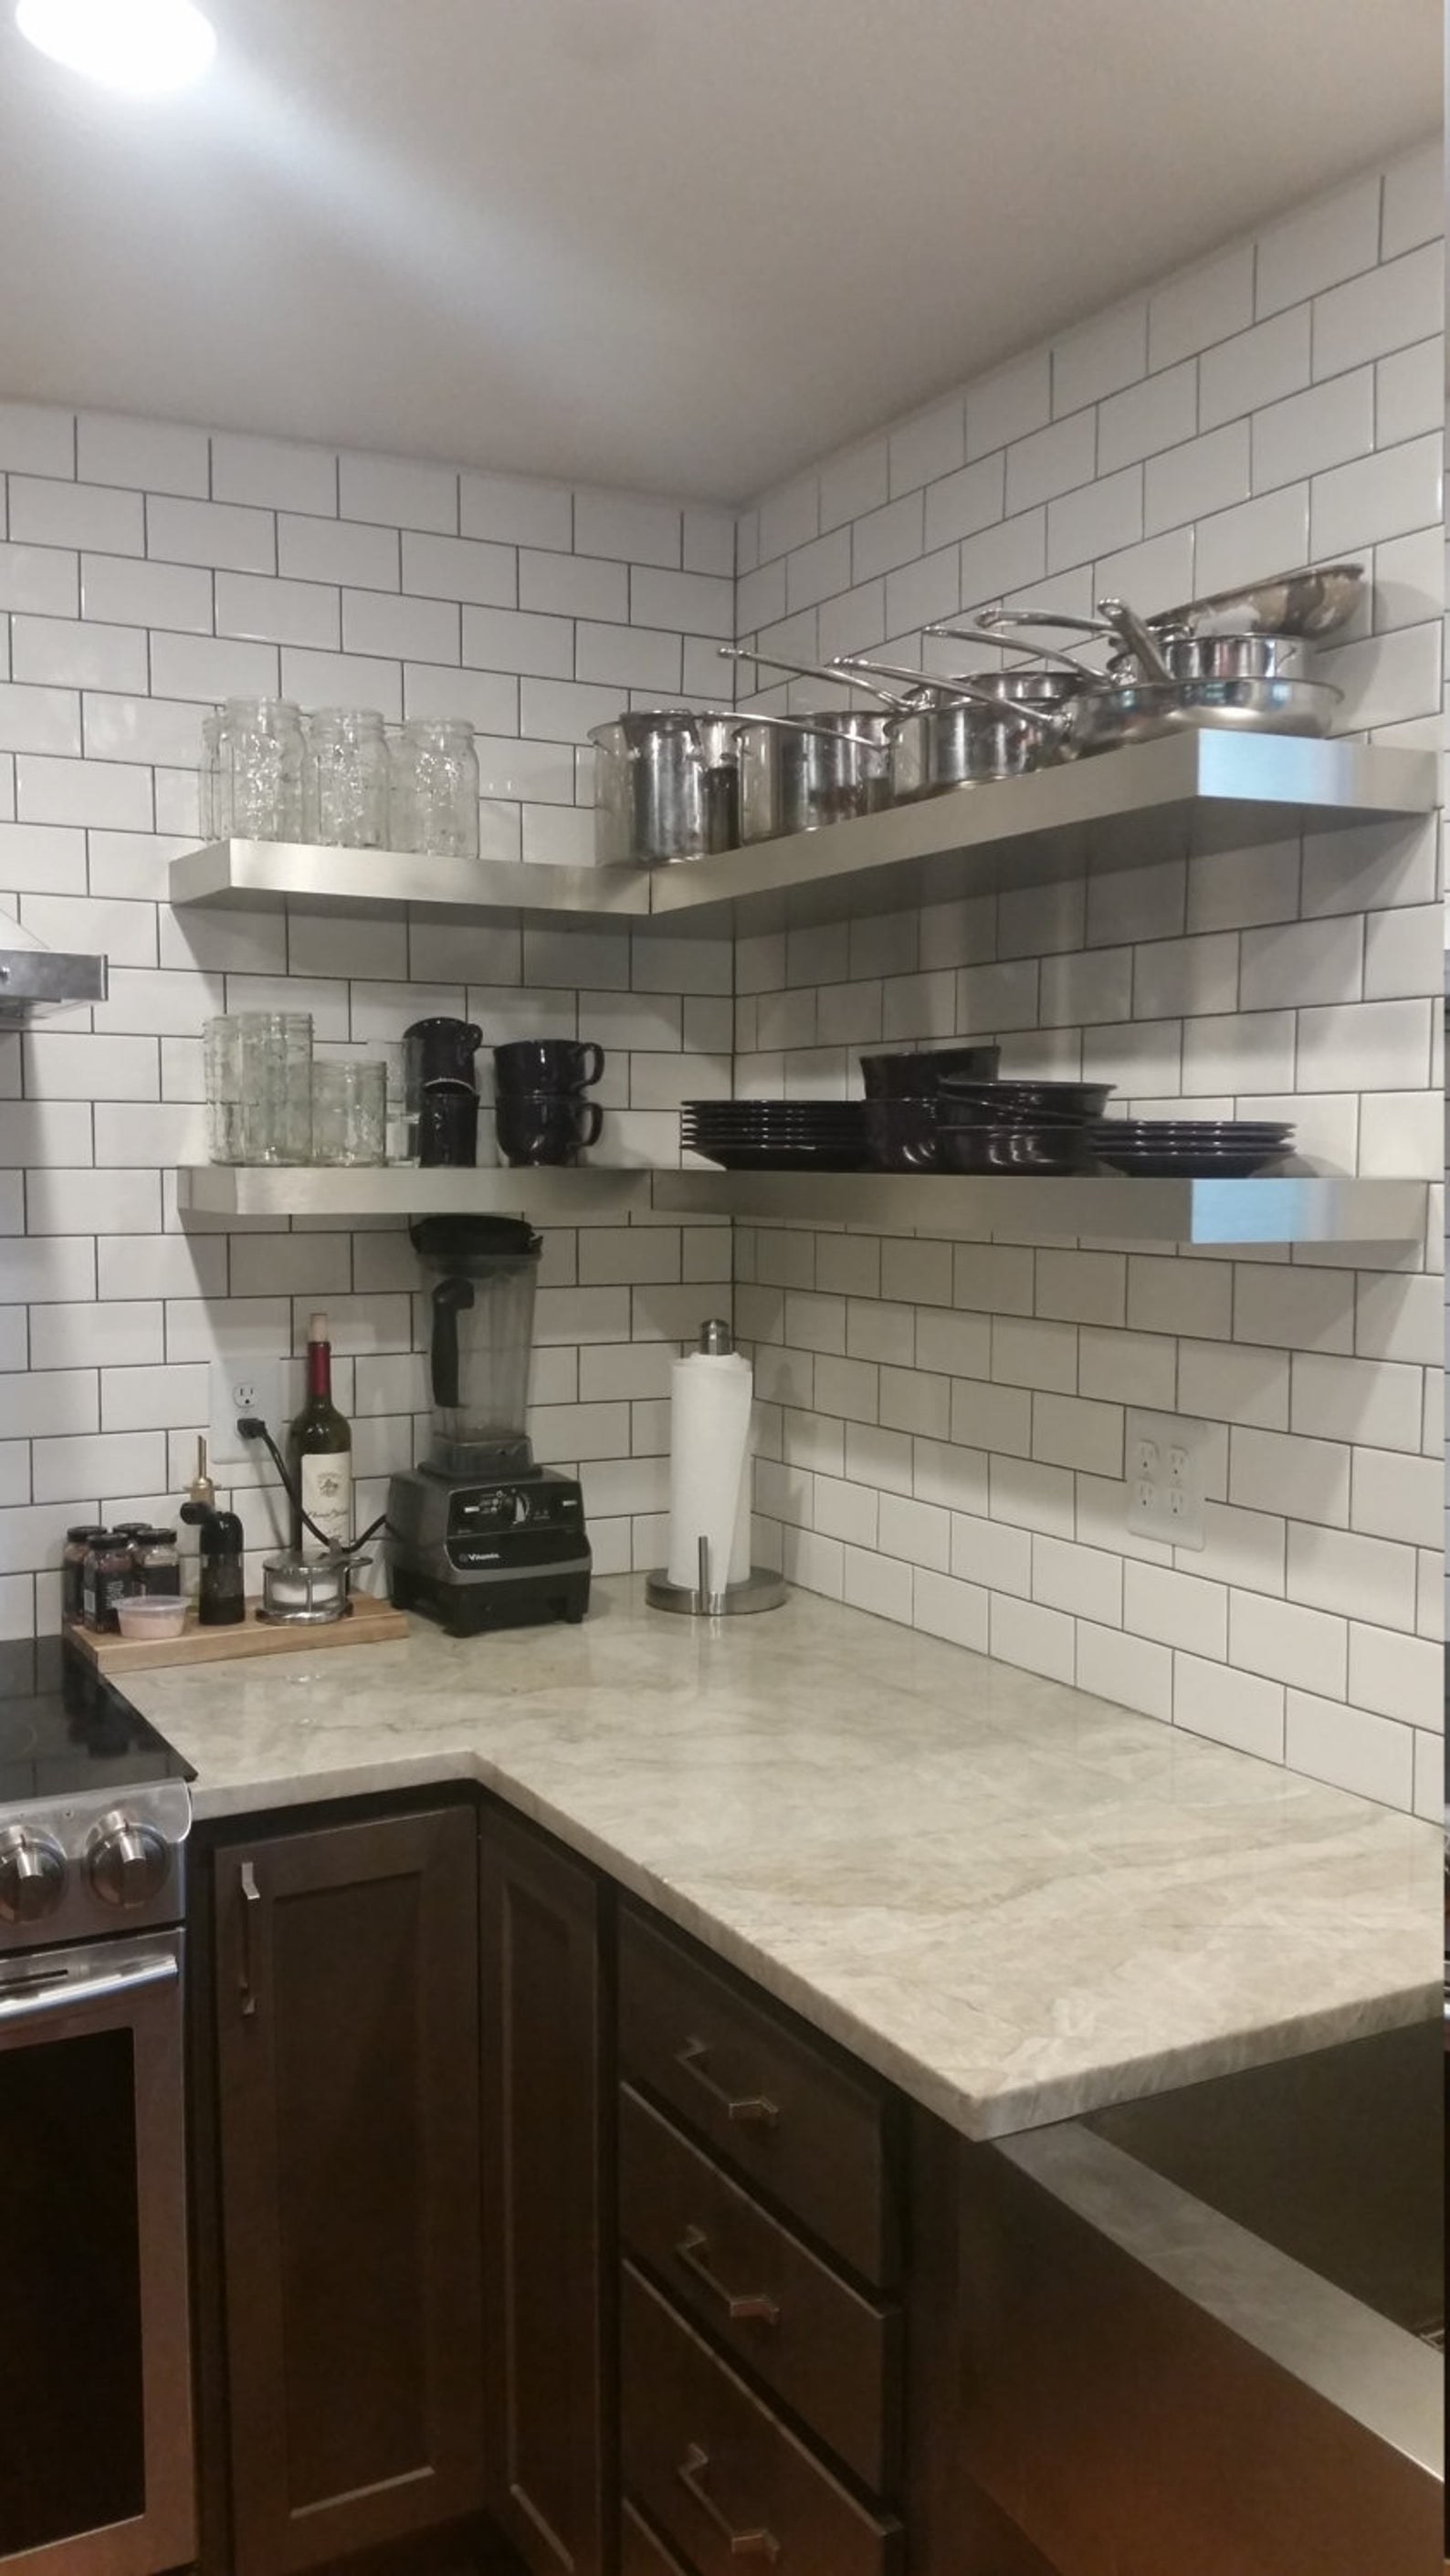 The shelves mounted on corner walls of a kitchen